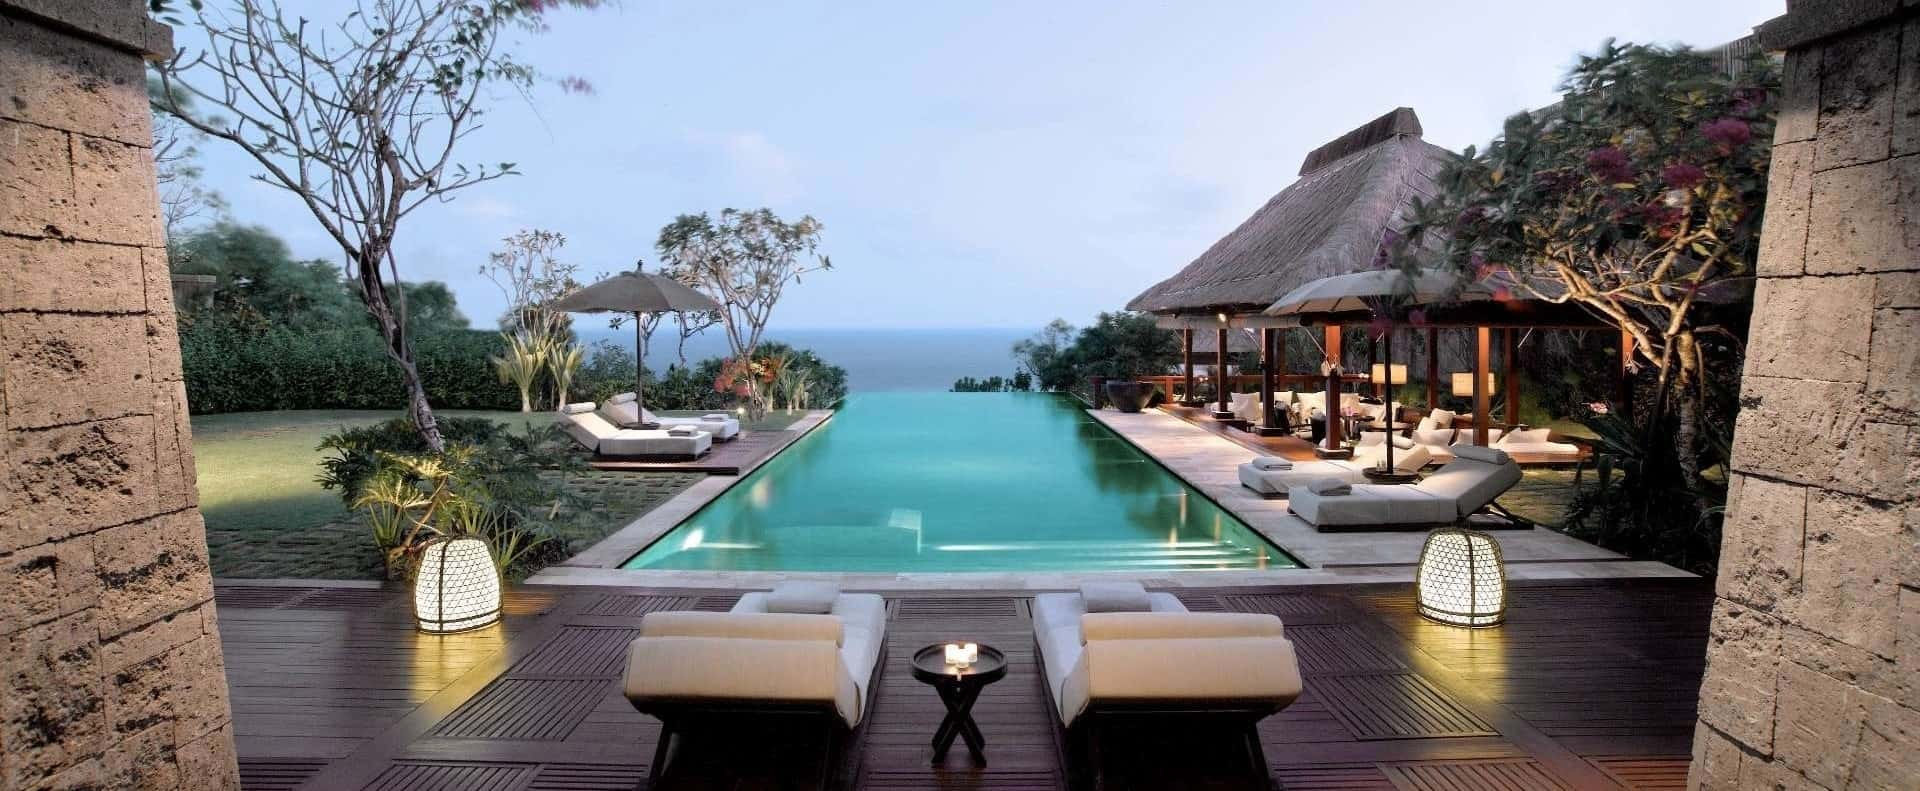 Mansion villa at Bulgari Resort, Bali